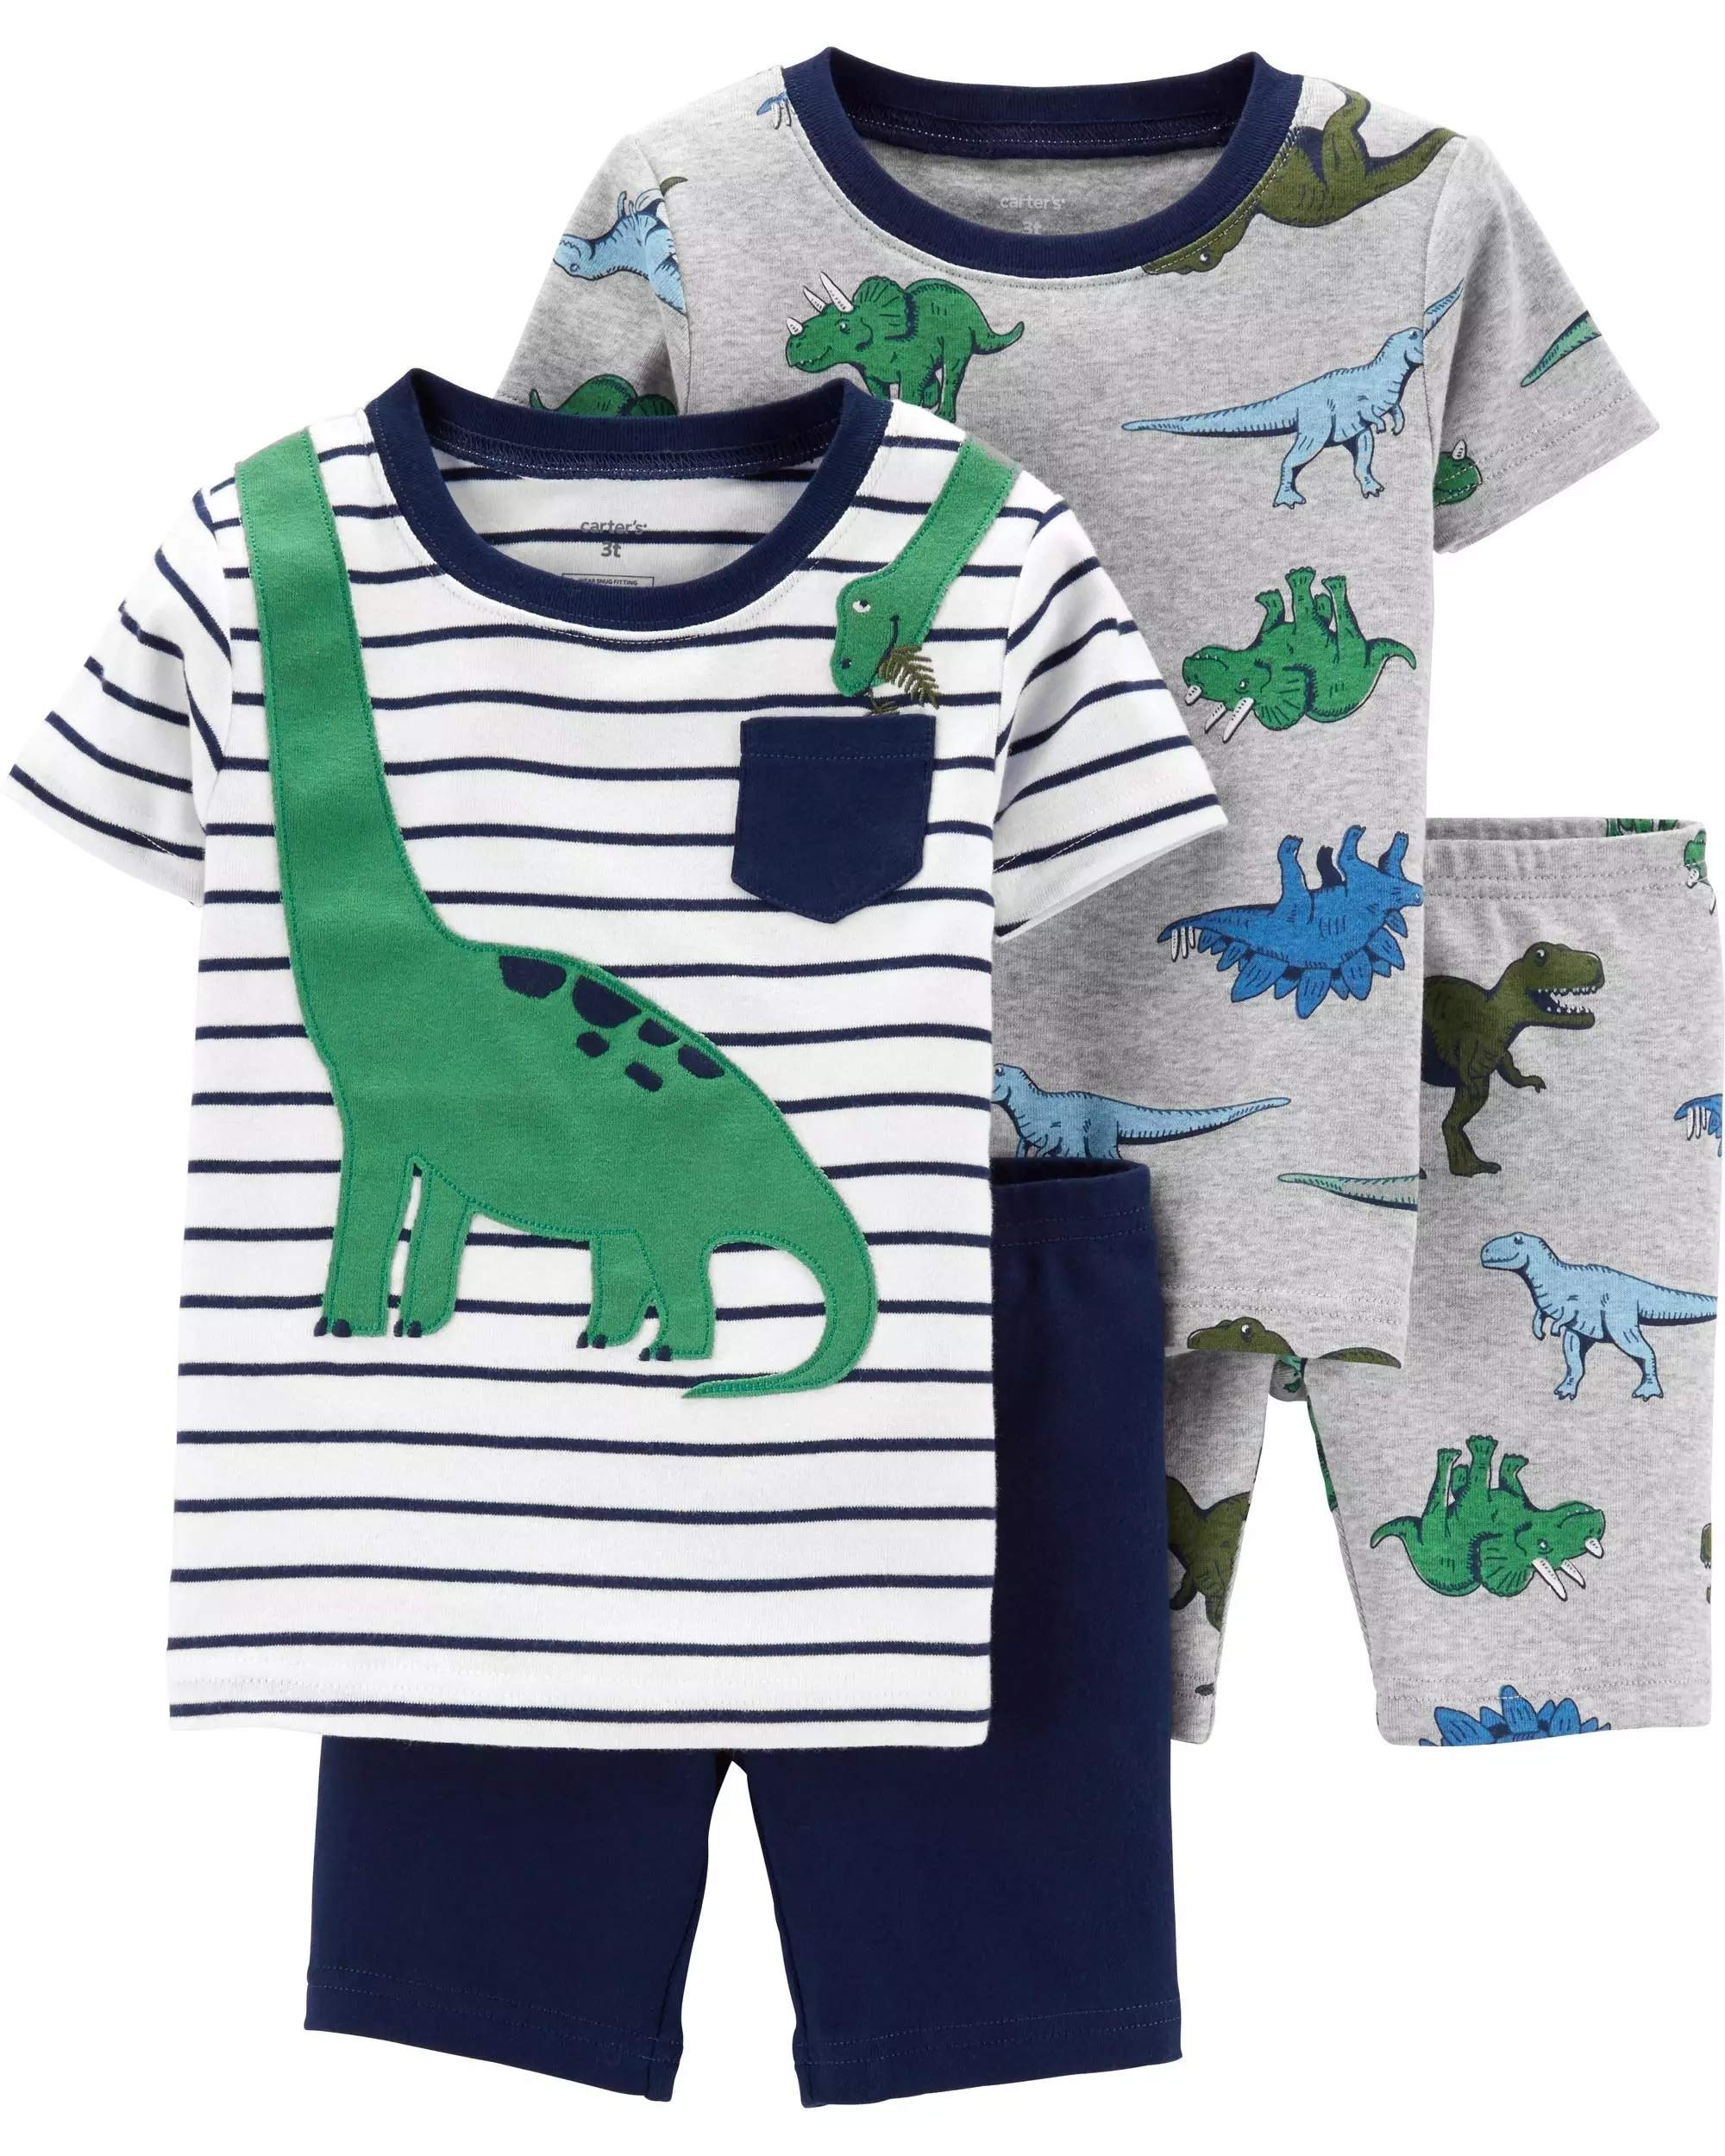 Carter's Toddler Boy's Dinosaur 4 Pc Set Nug Fit PJs Pajamas (3T)